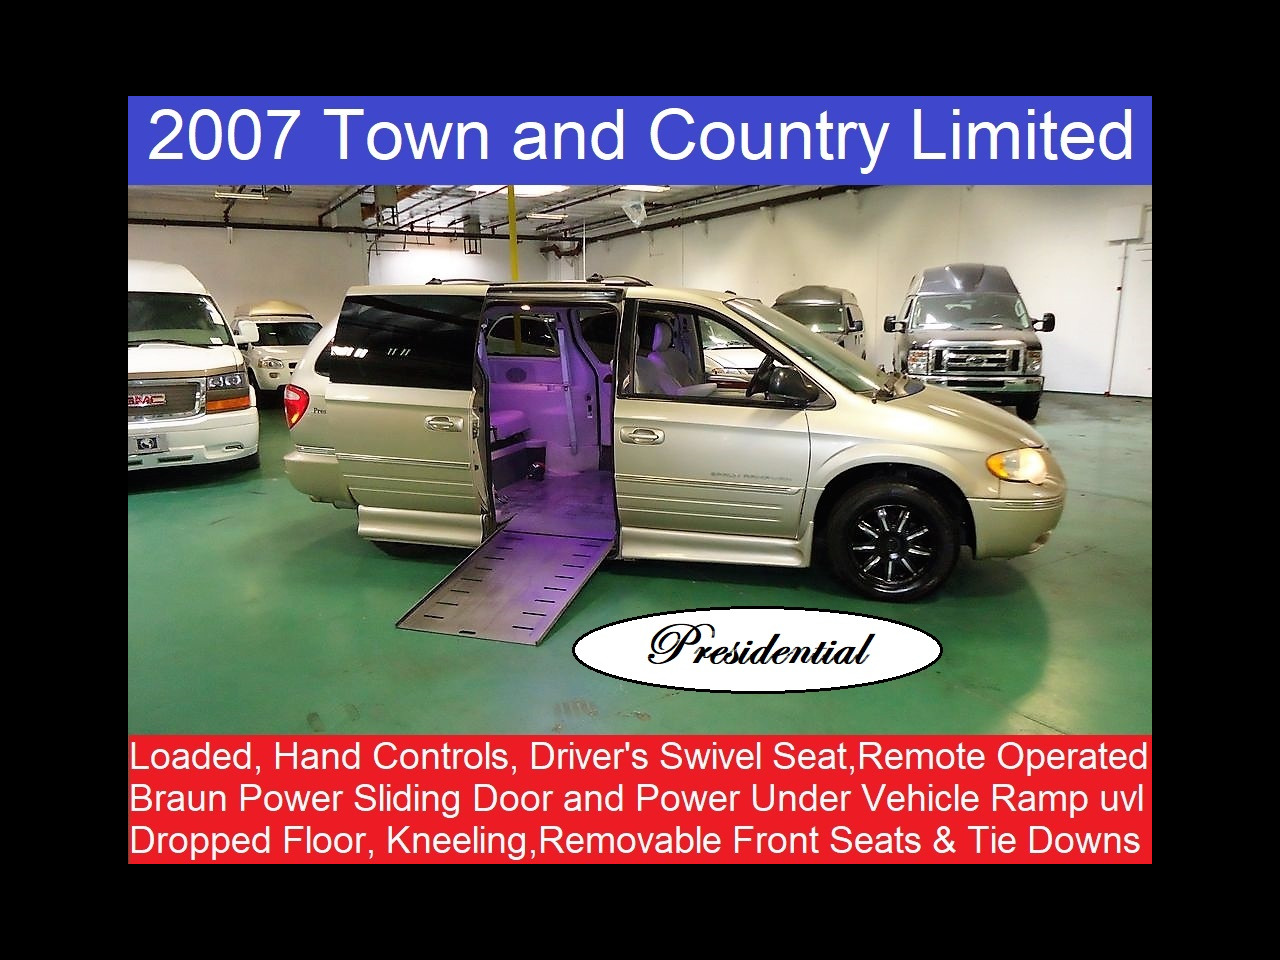 2007 Chrysler Town & Country LWB Limited Presidential Wheelchair Mobility Handicap